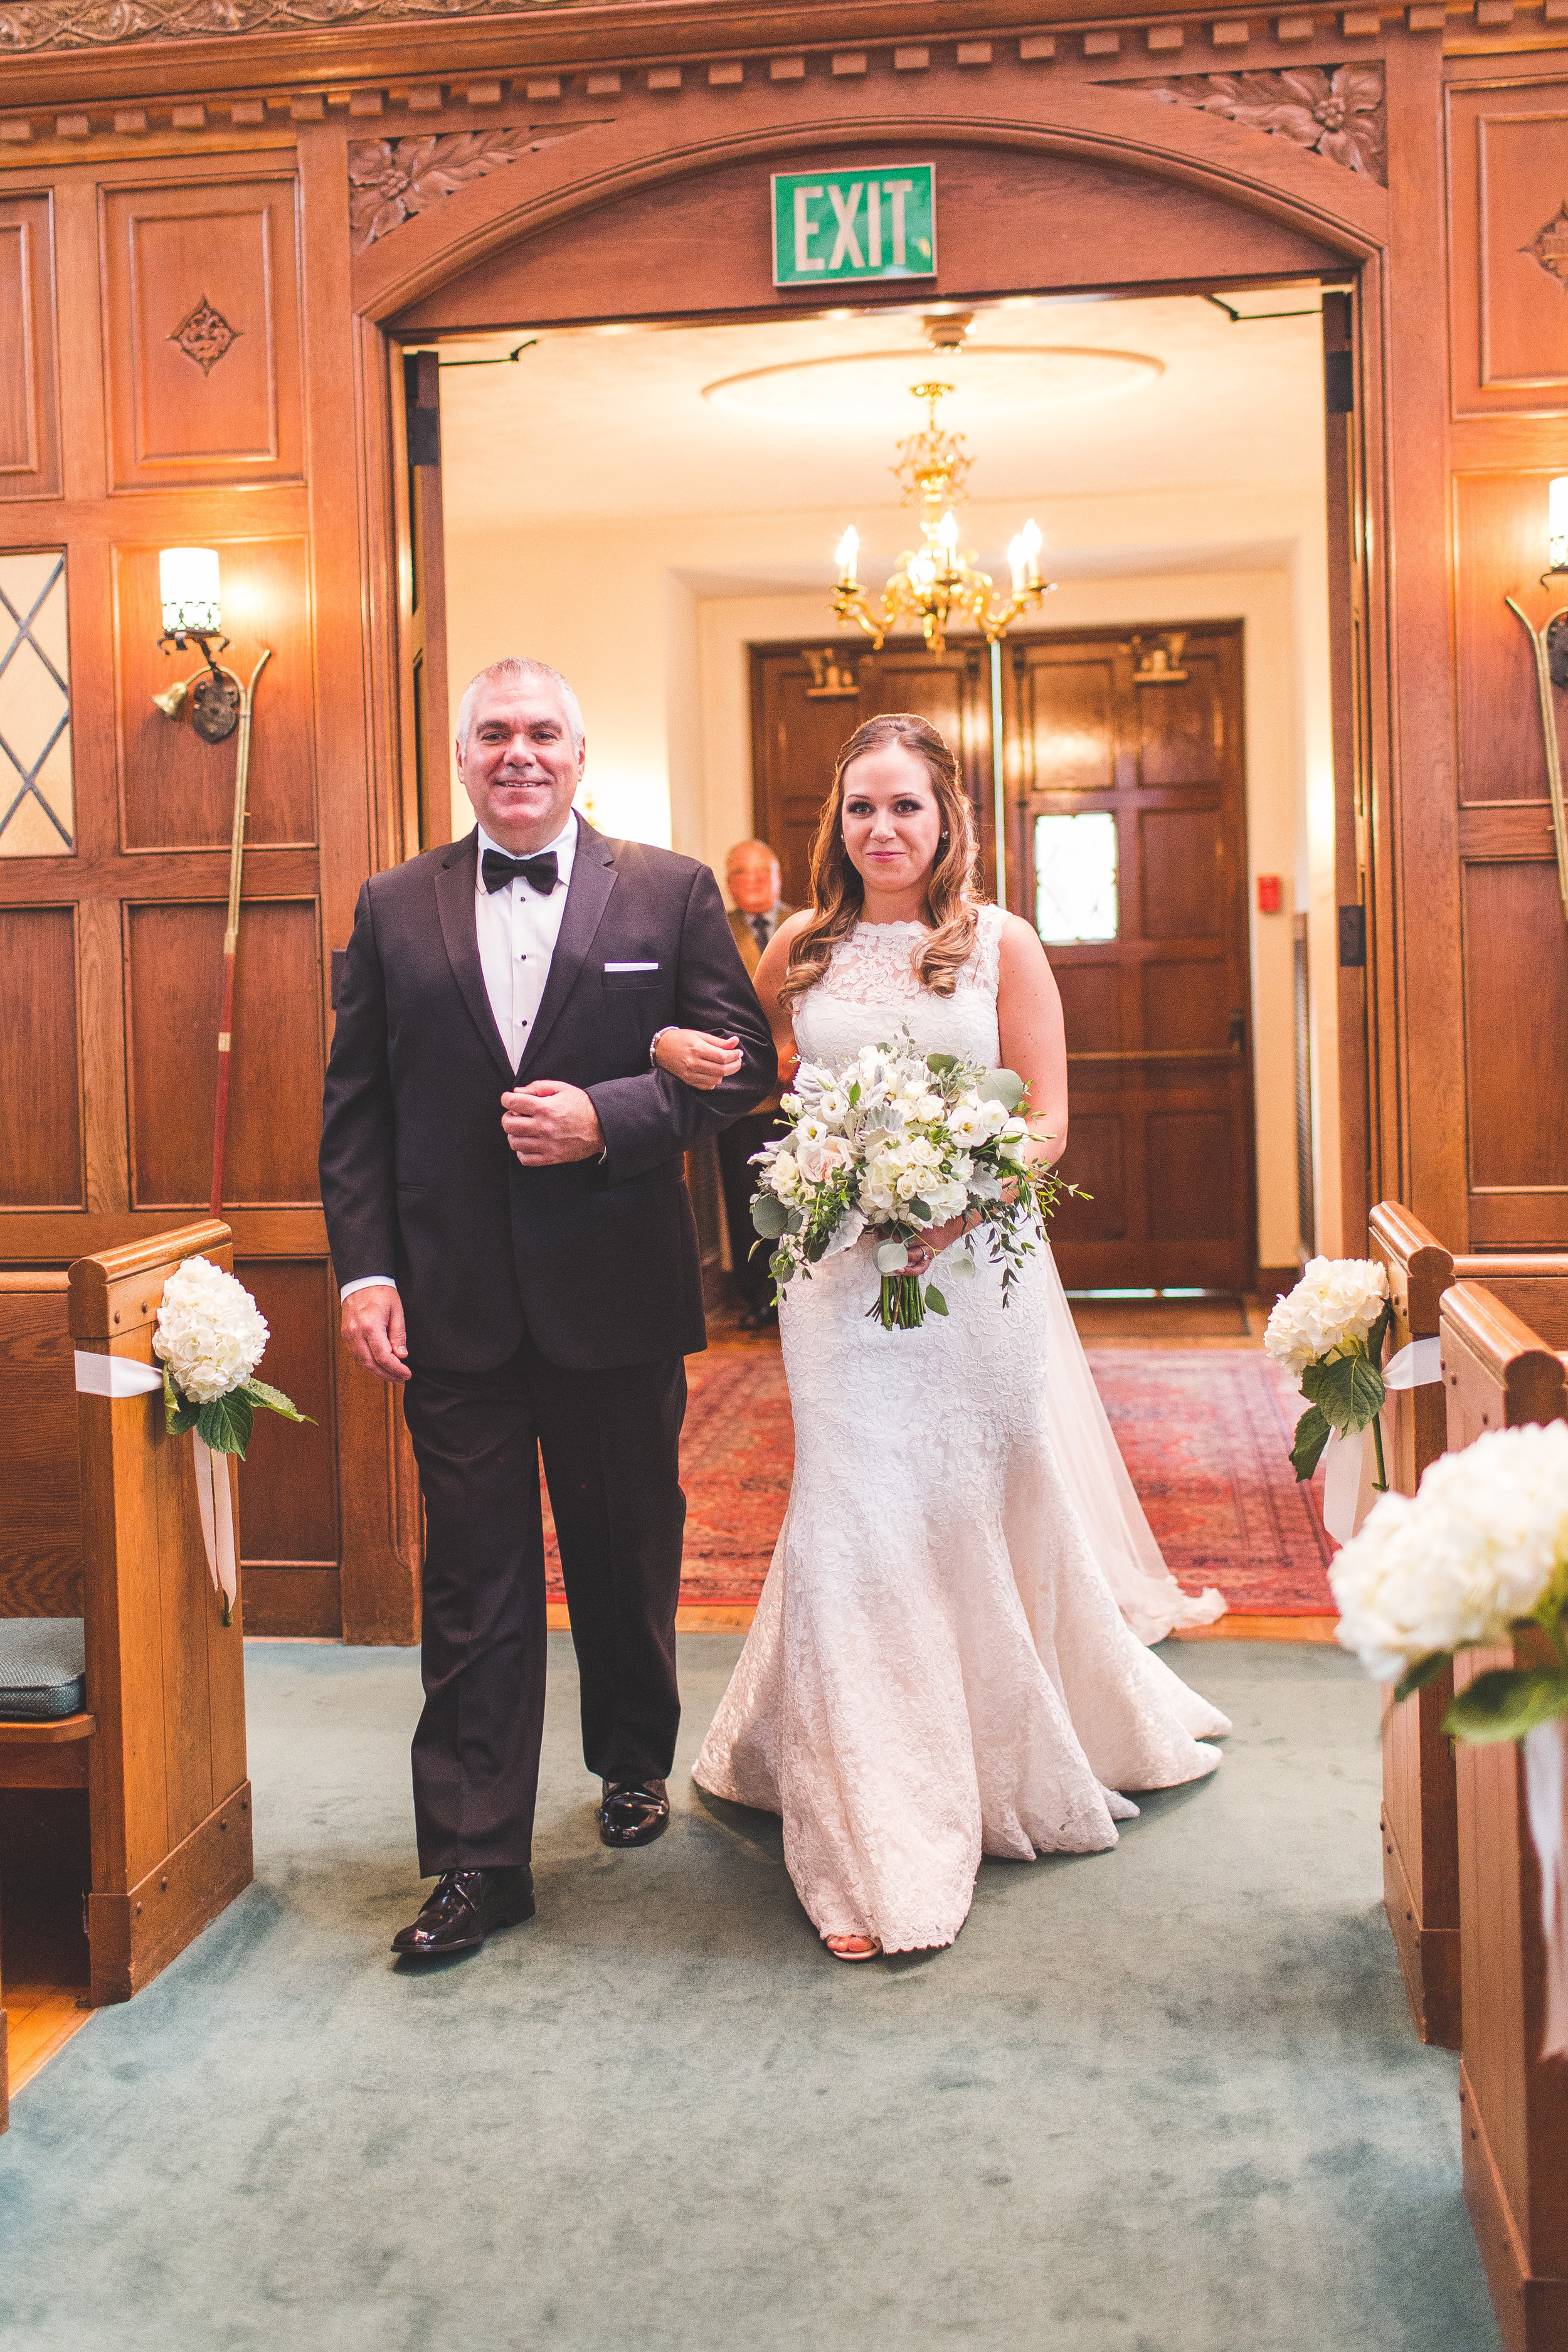 Father and bride isle walk traditional church